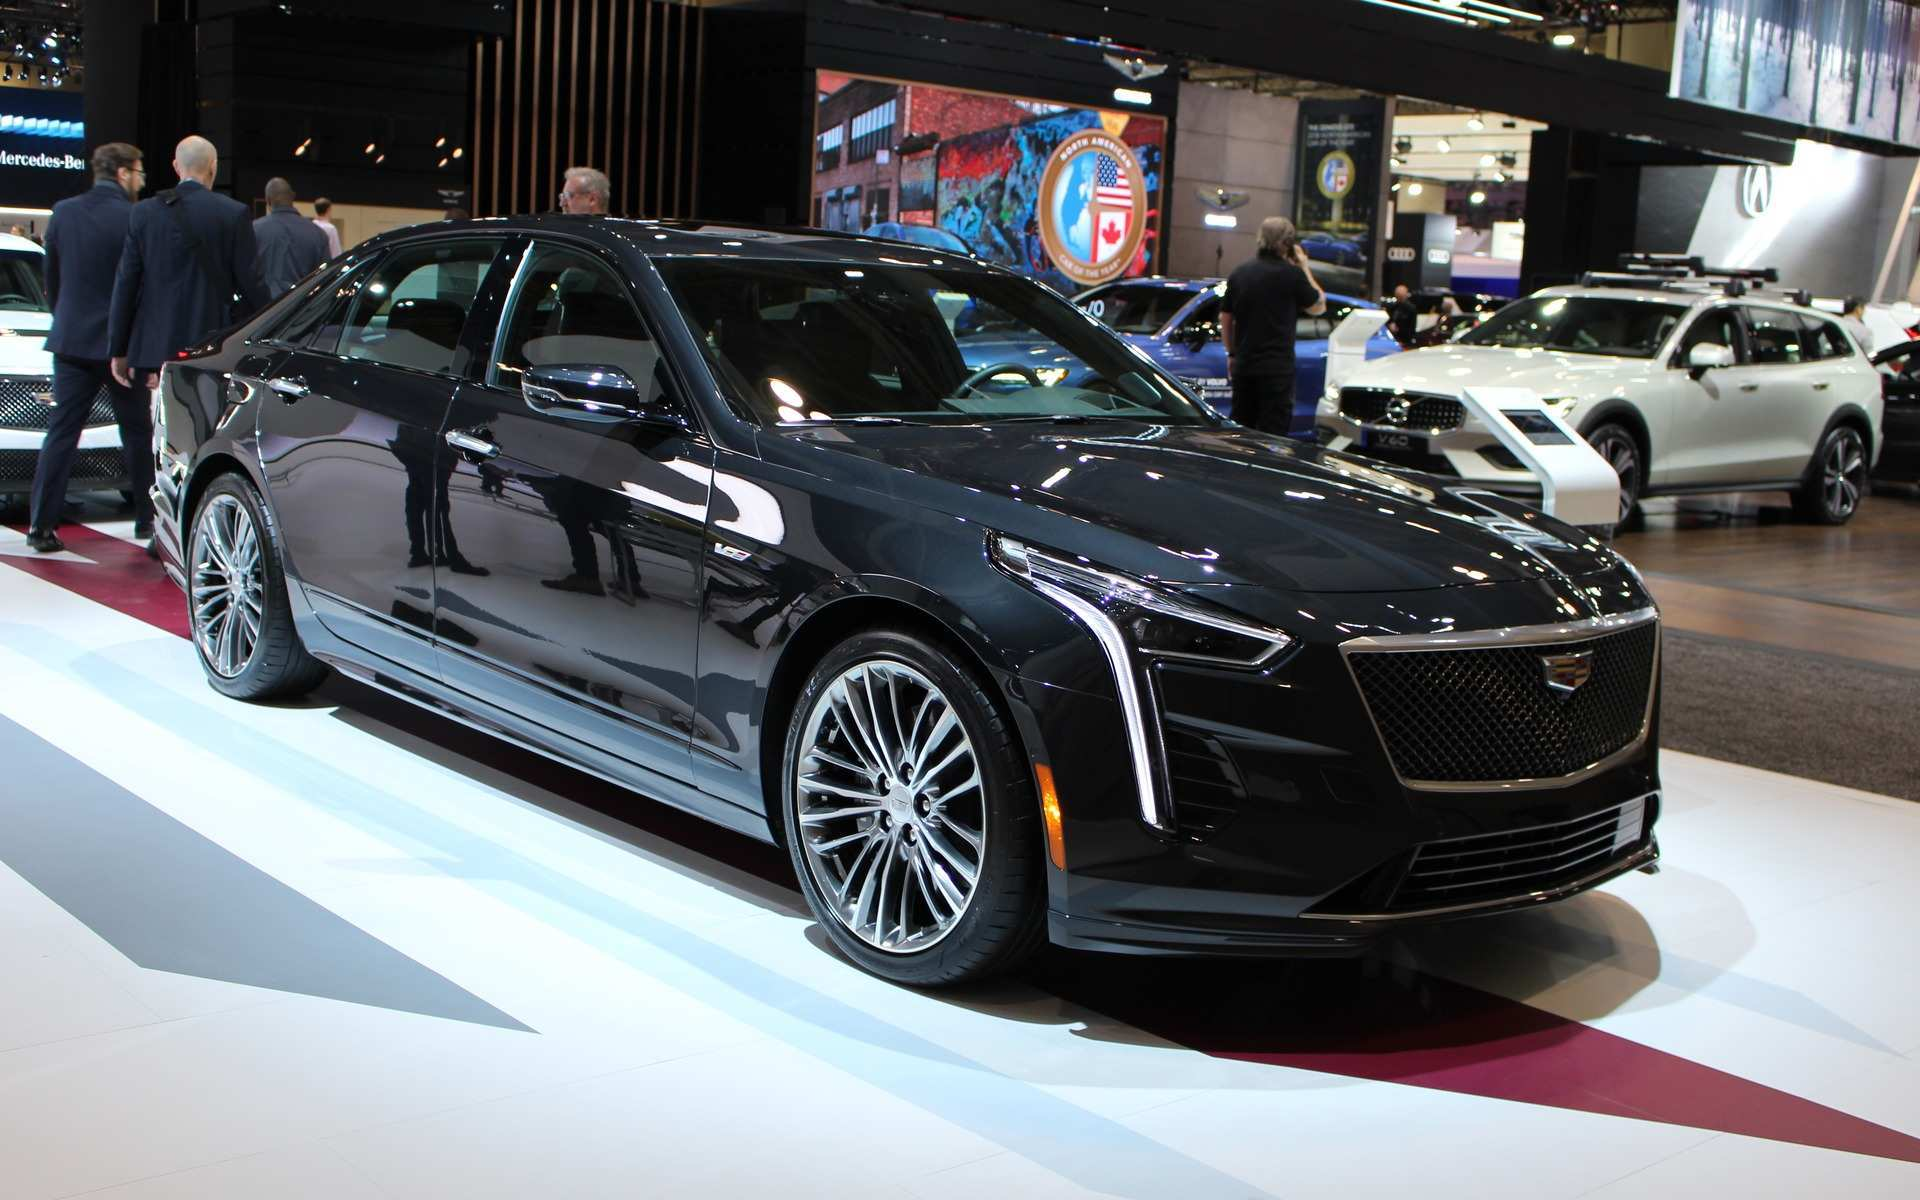 17 A 2020 Cadillac Ct6 V8 Wallpaper